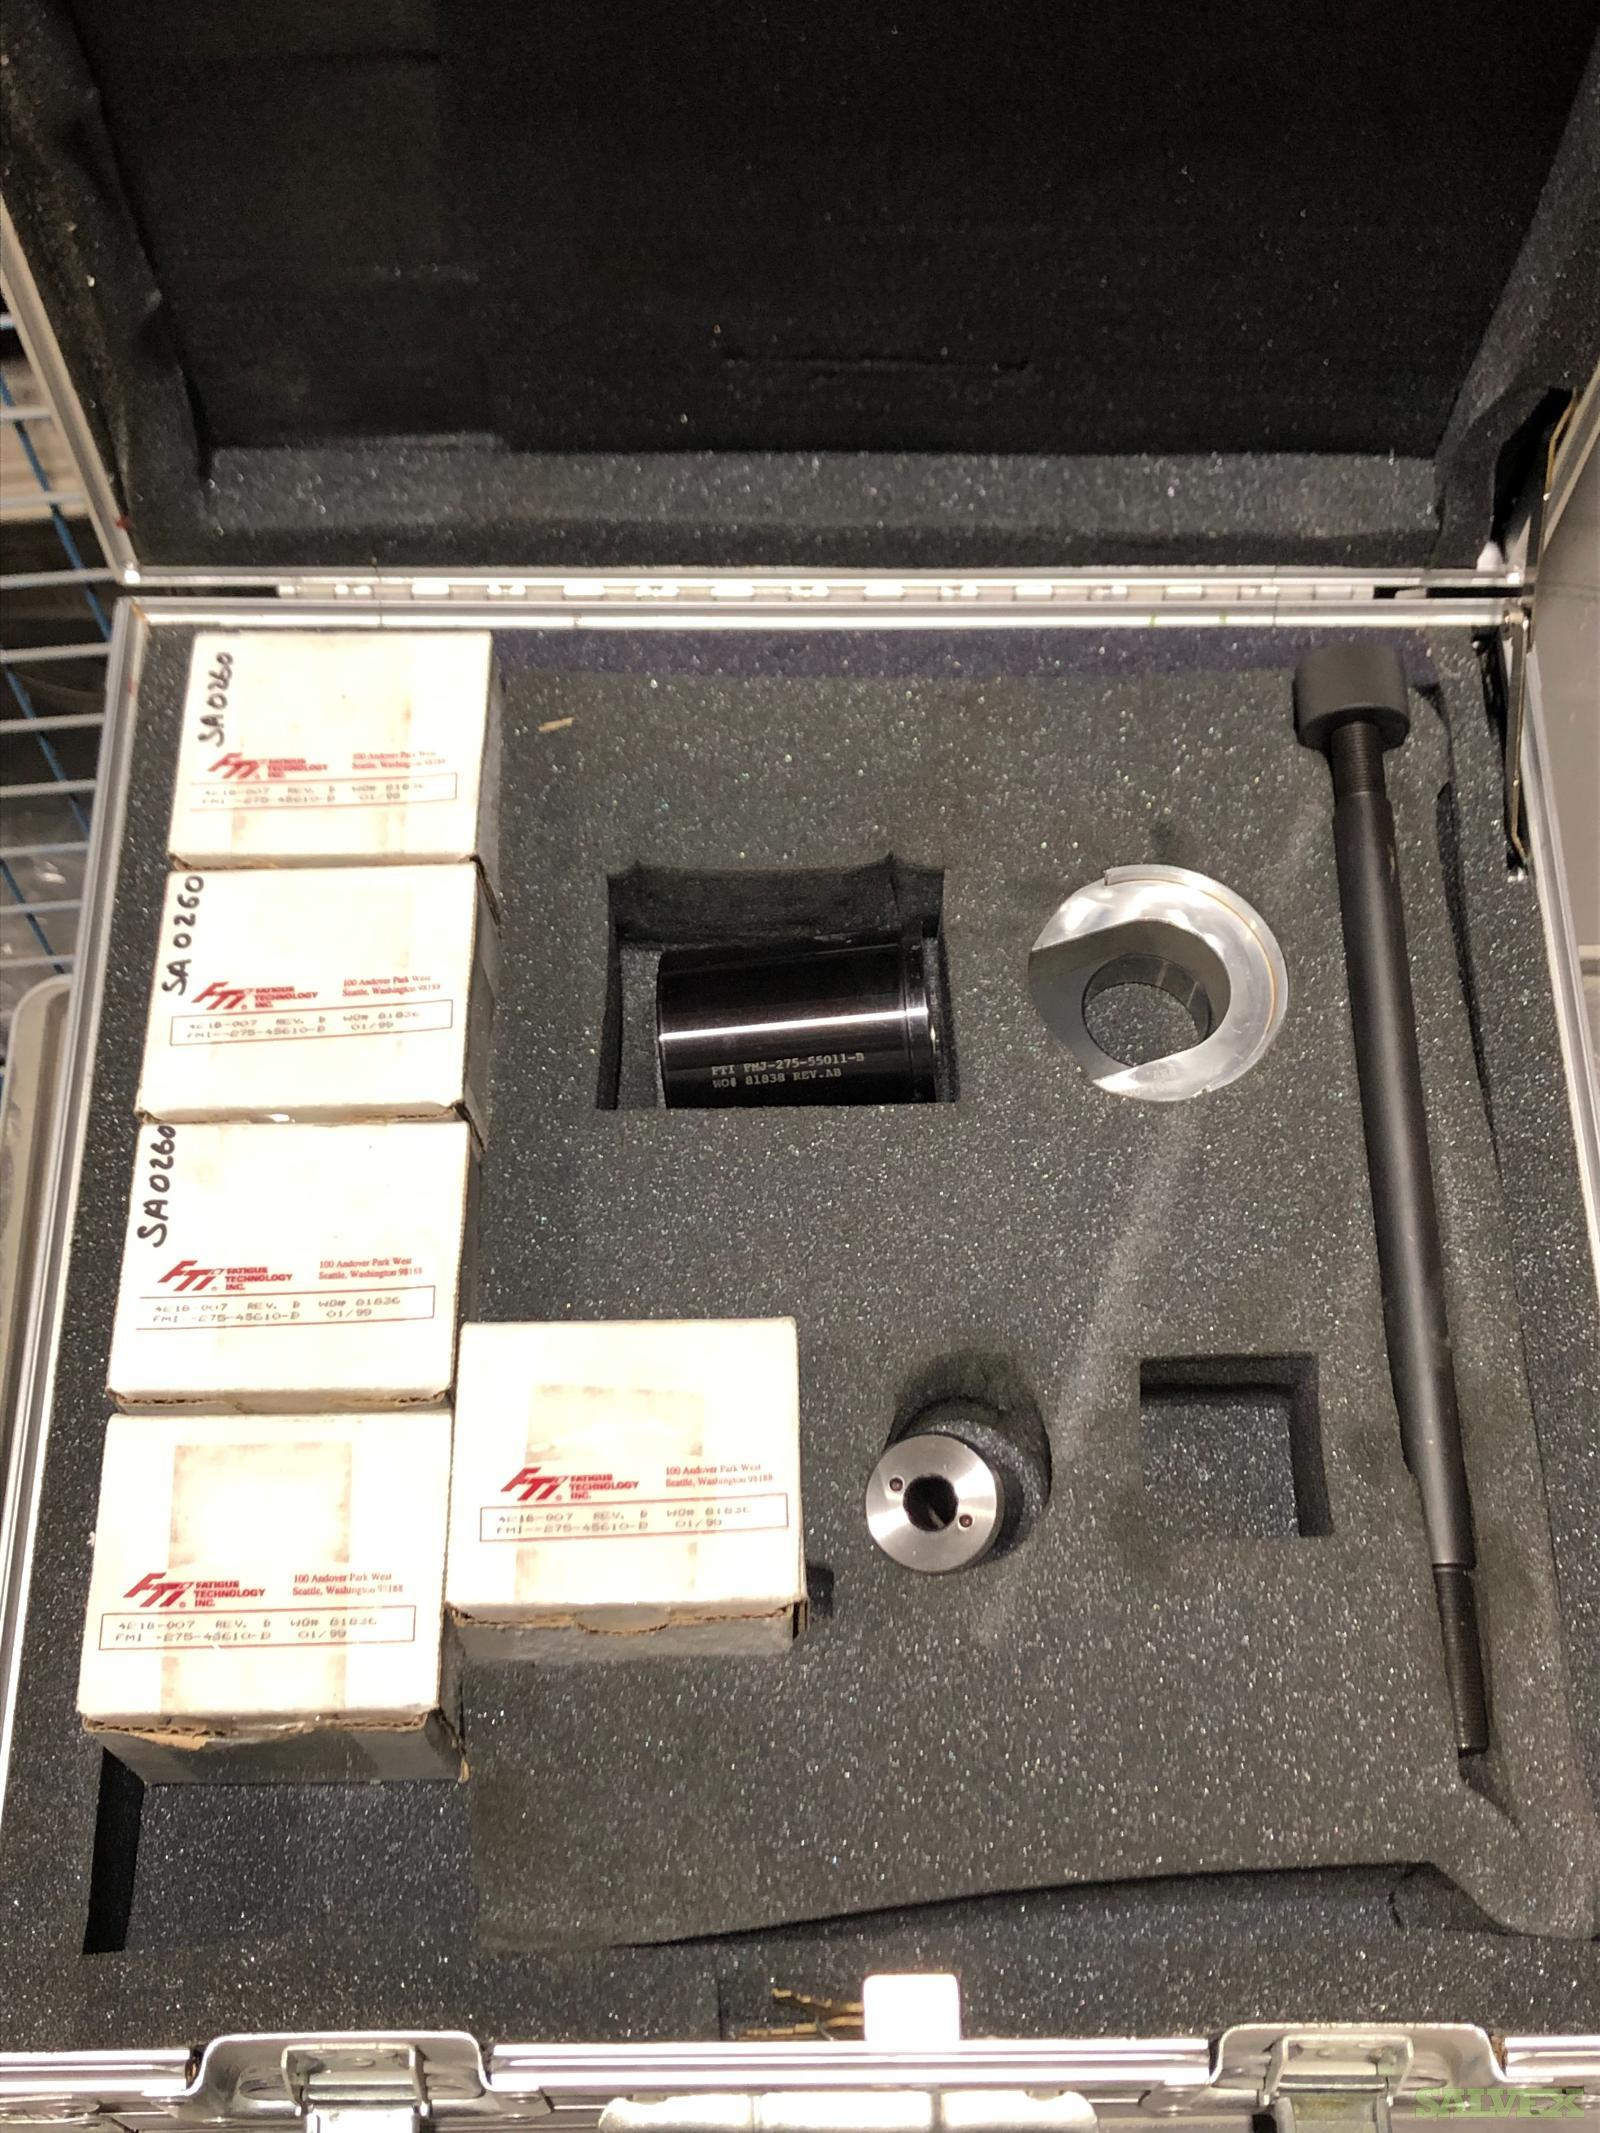 FTI Split Sleeve Cold Expansion Tooling System (9 Kits)